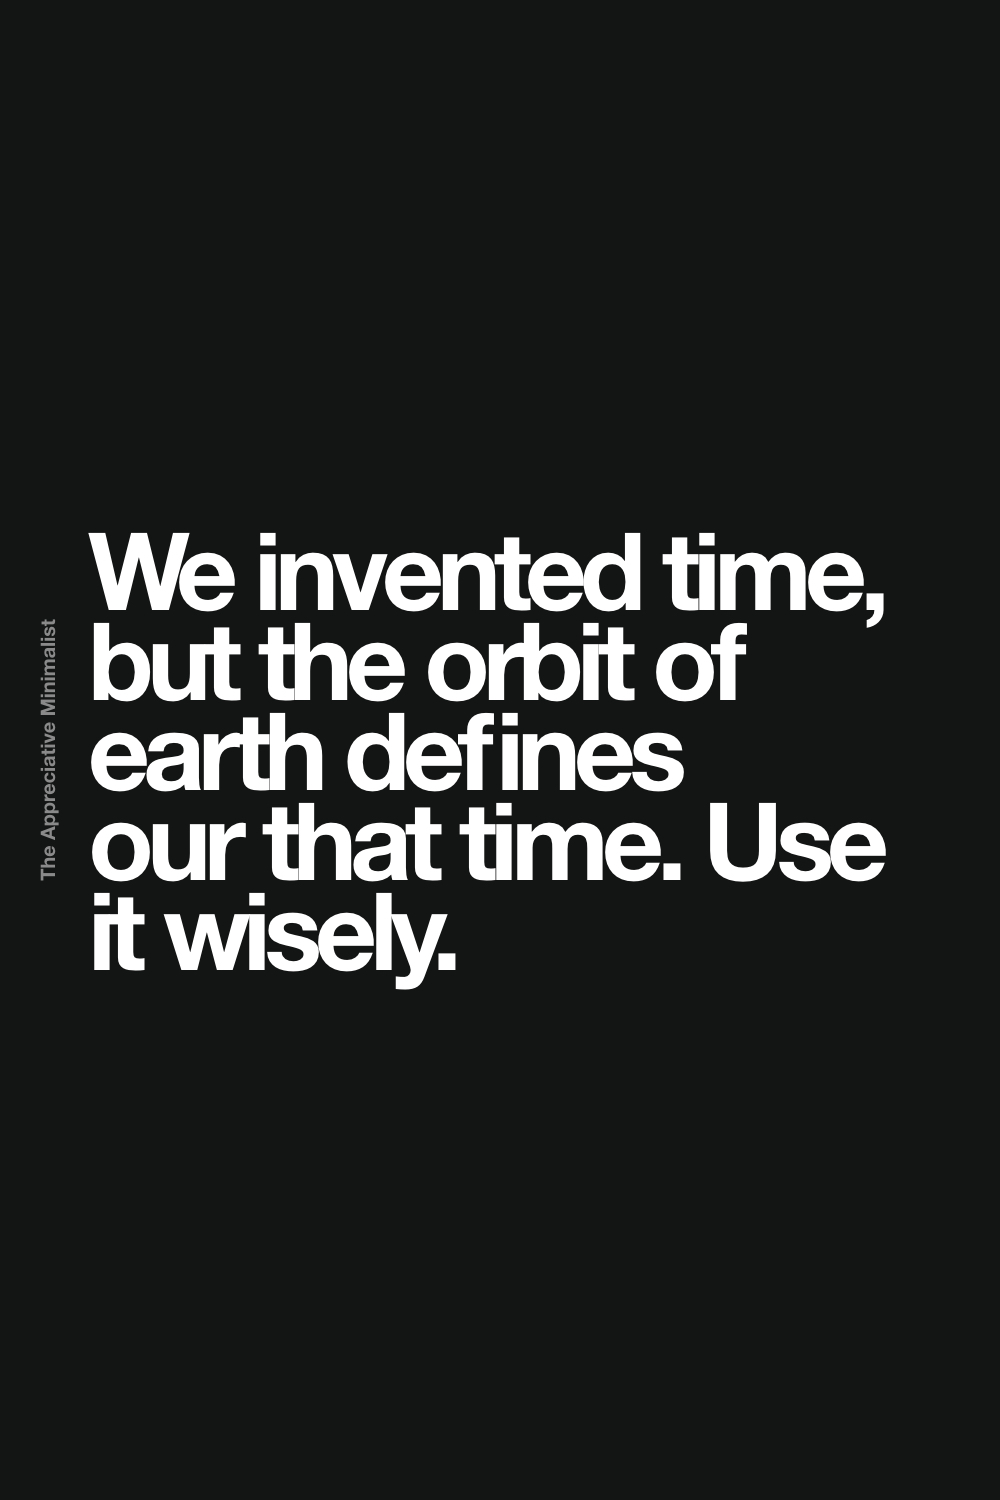 We invented time, but the orbit of earth defines our that time. Use it wisely.